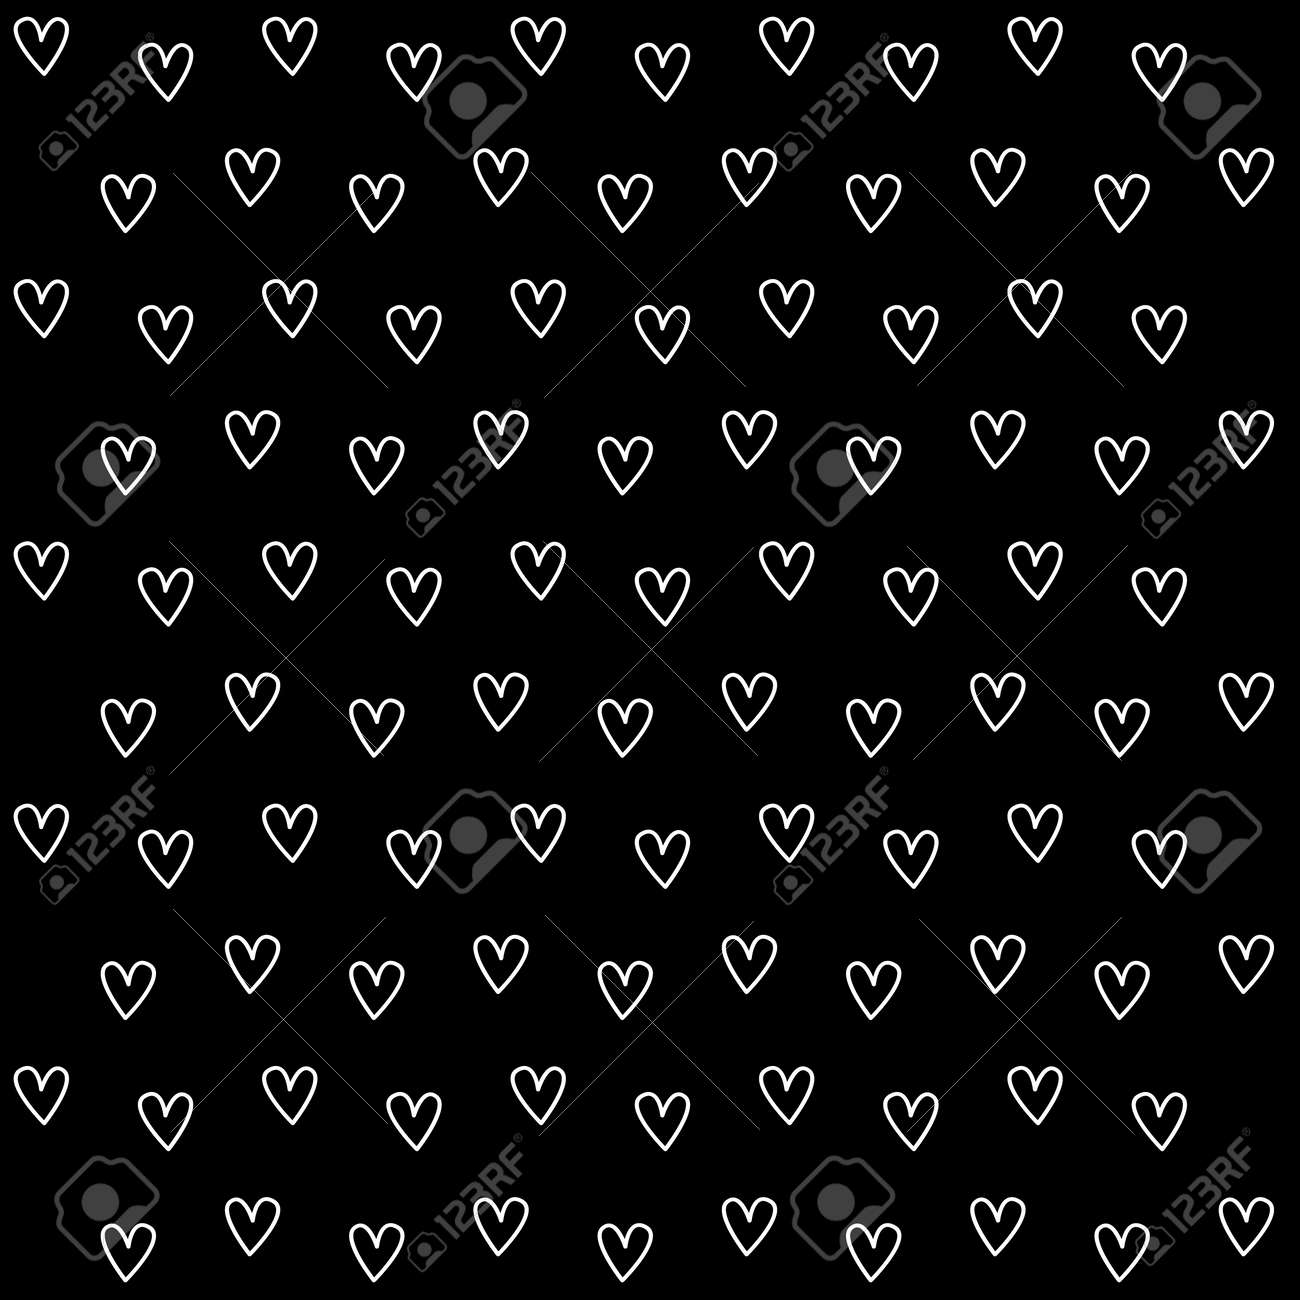 Black Heart Wallpaper Great For Any Use